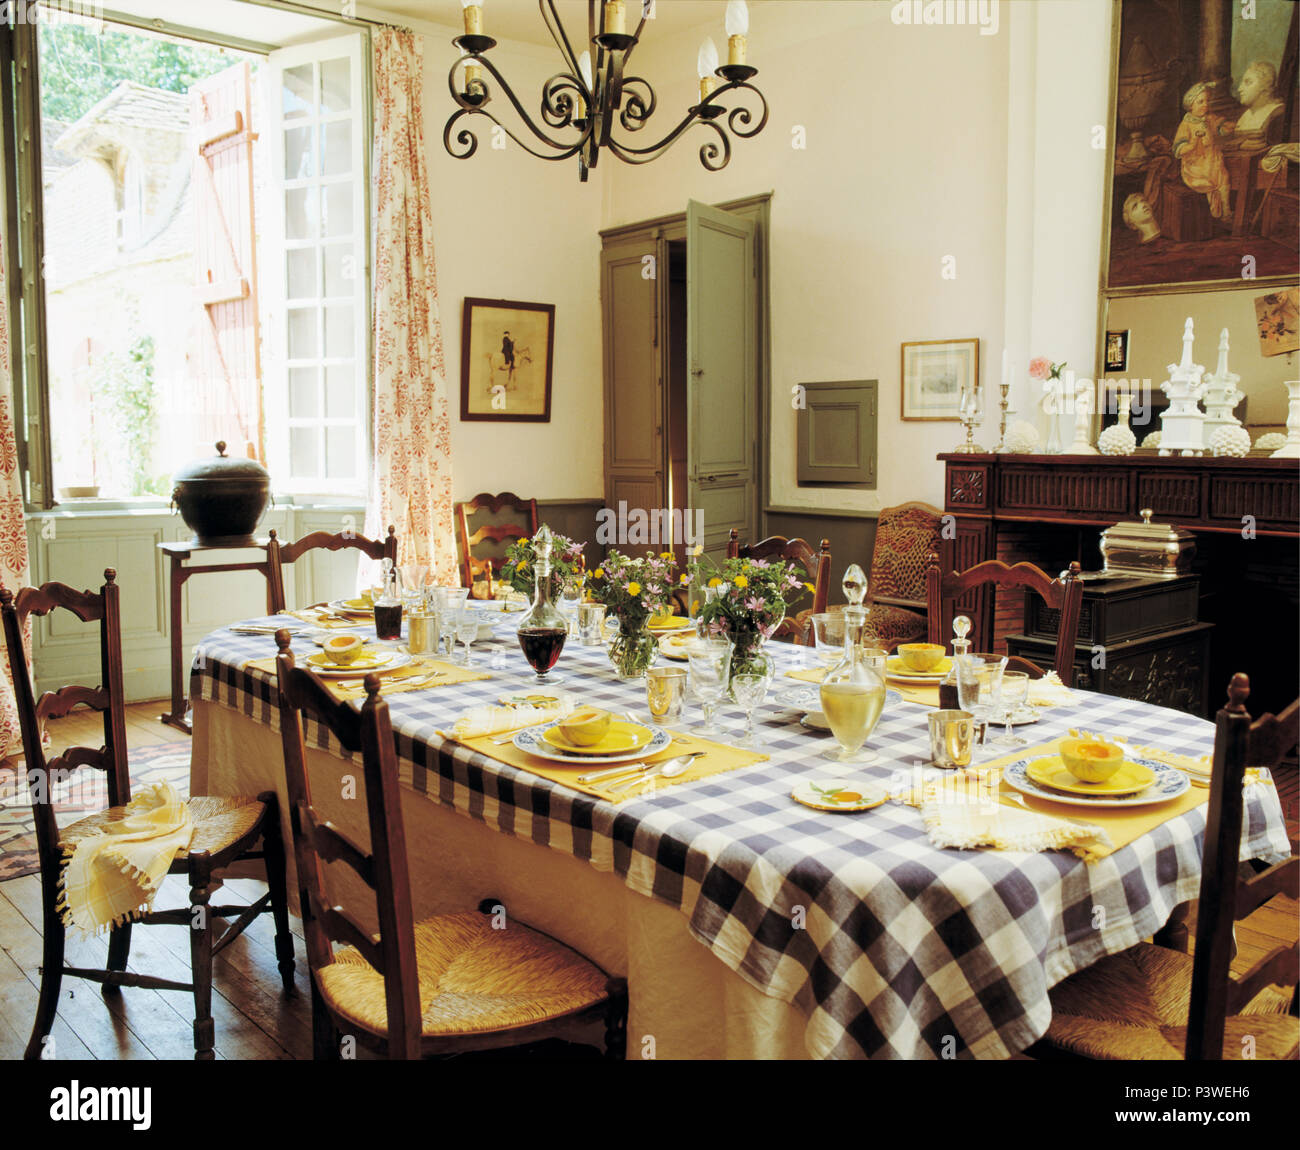 Yellow Crockery On Blue+white Checked Tablecloth In French Country Dining  Room With Ladder Back Rush Seated Chairs